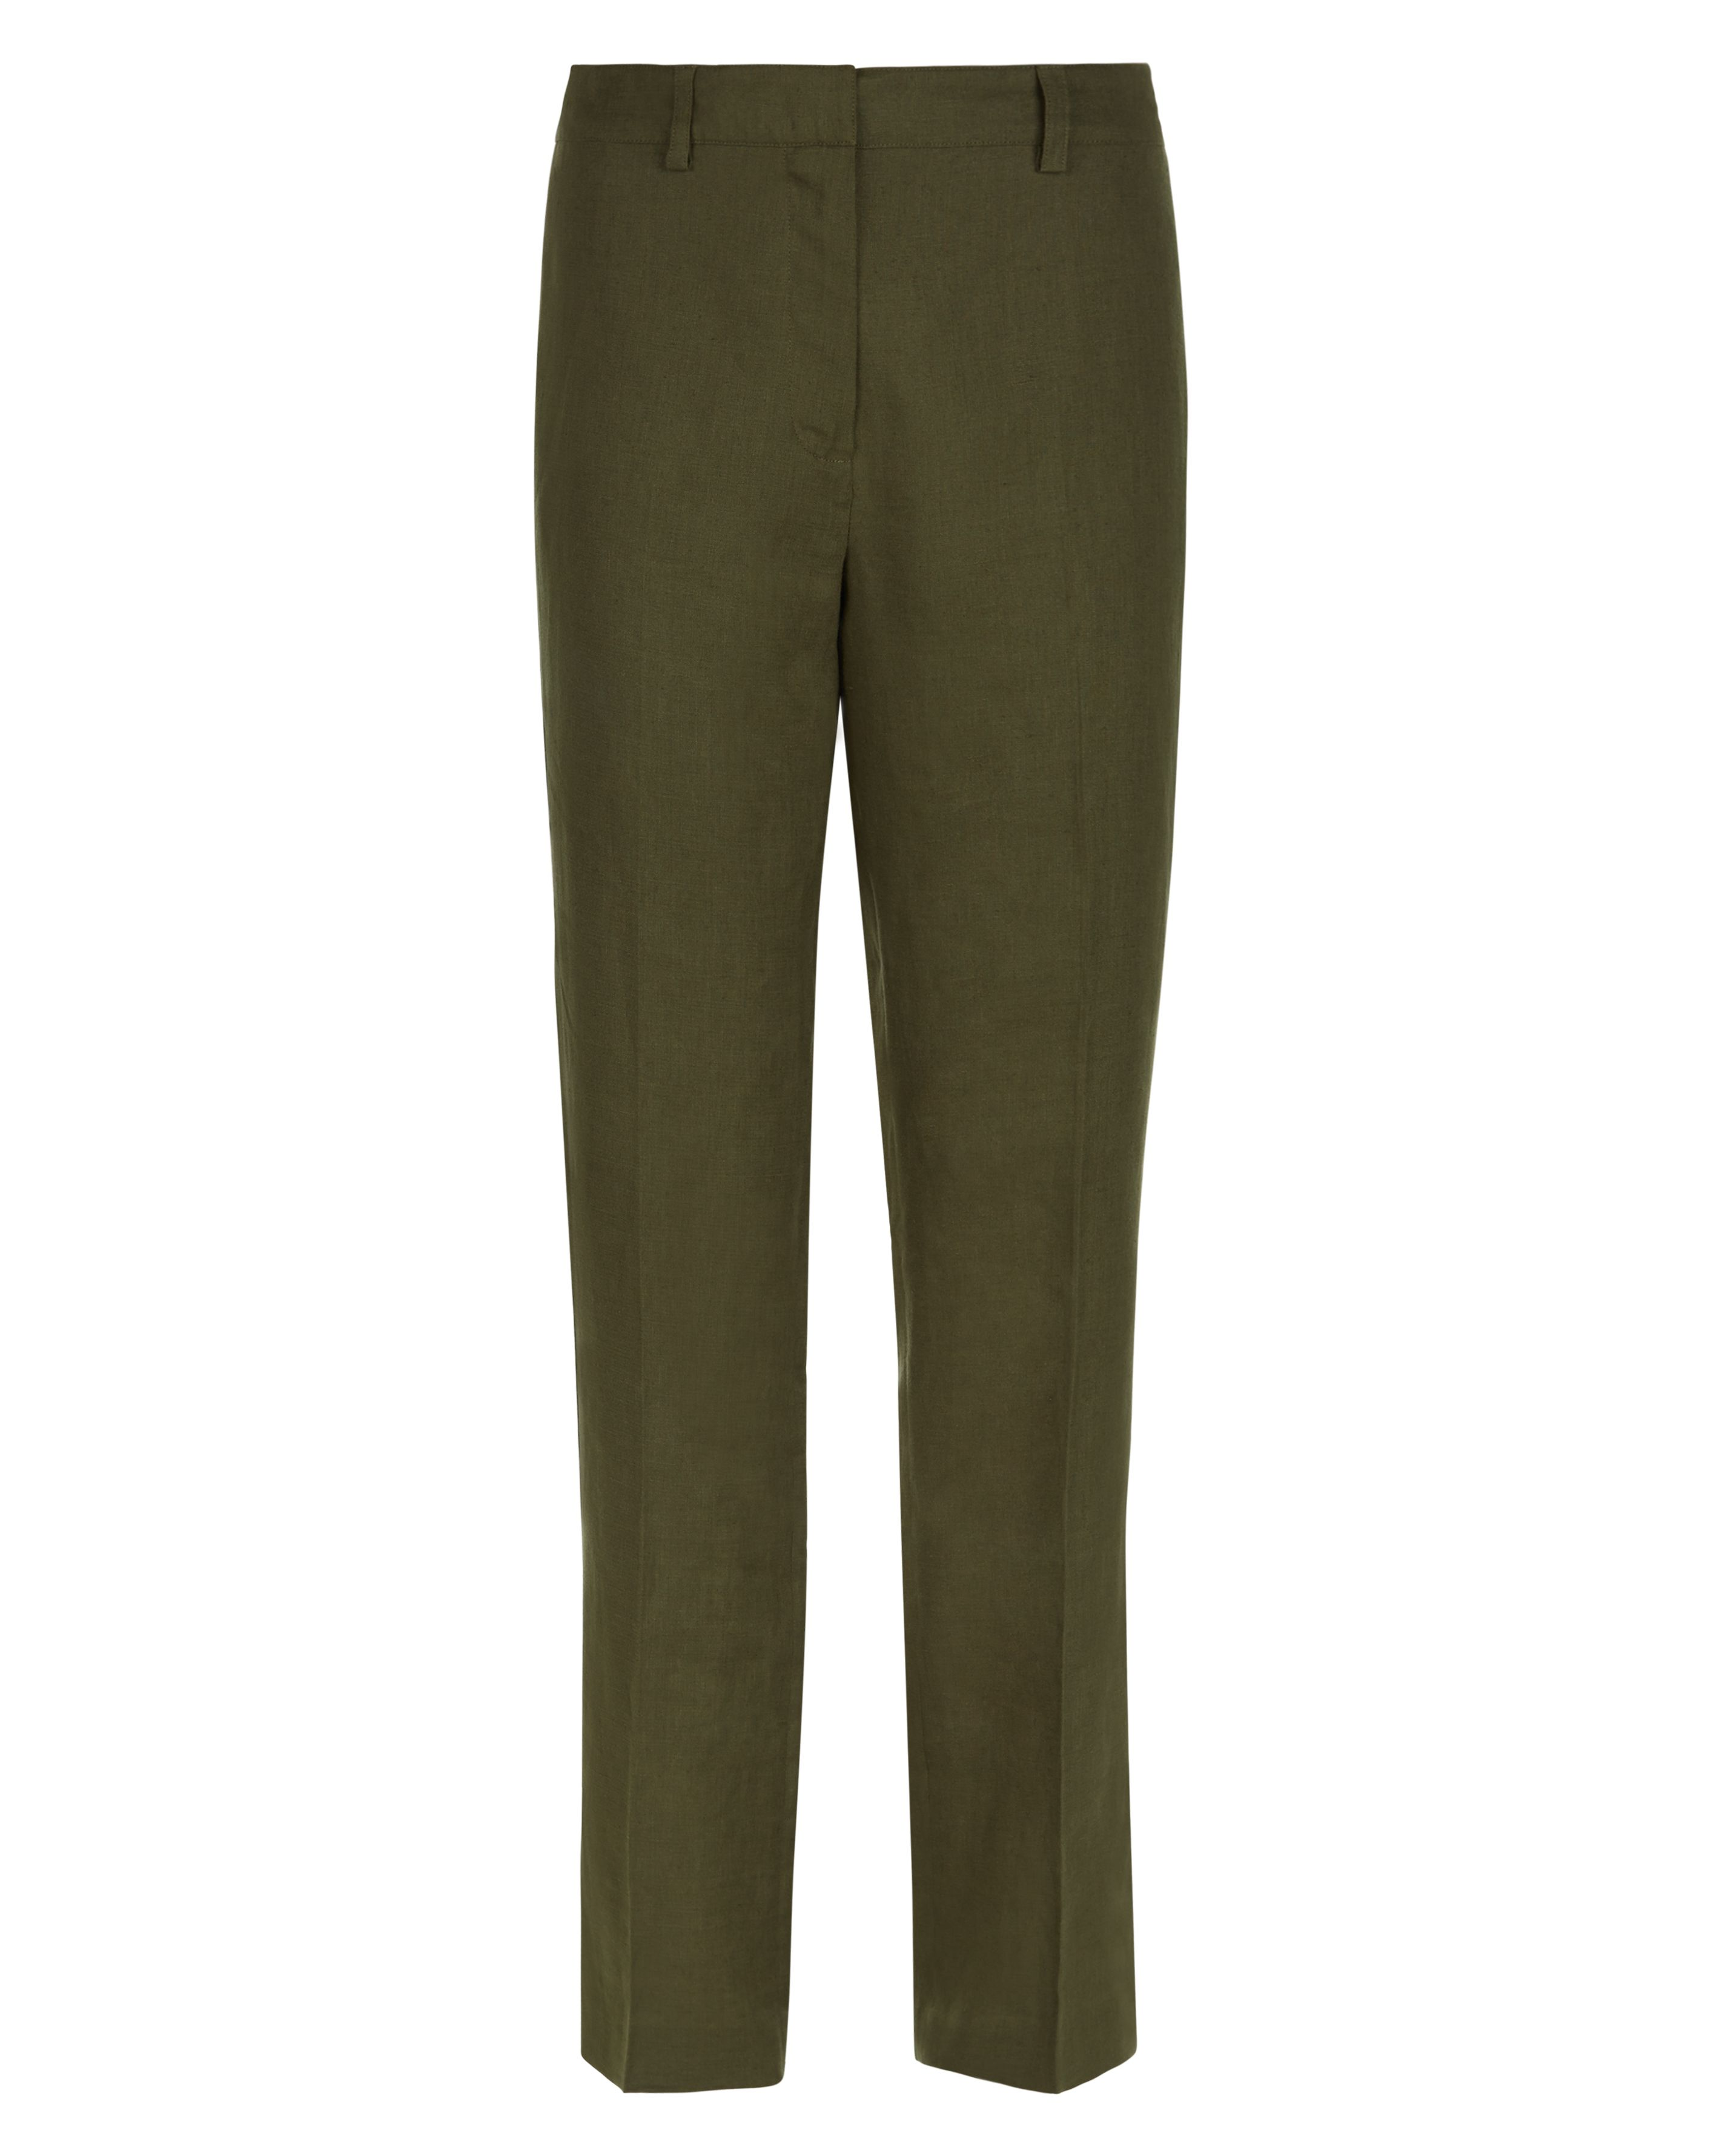 Jaeger Parallel Linen Trousers, Green